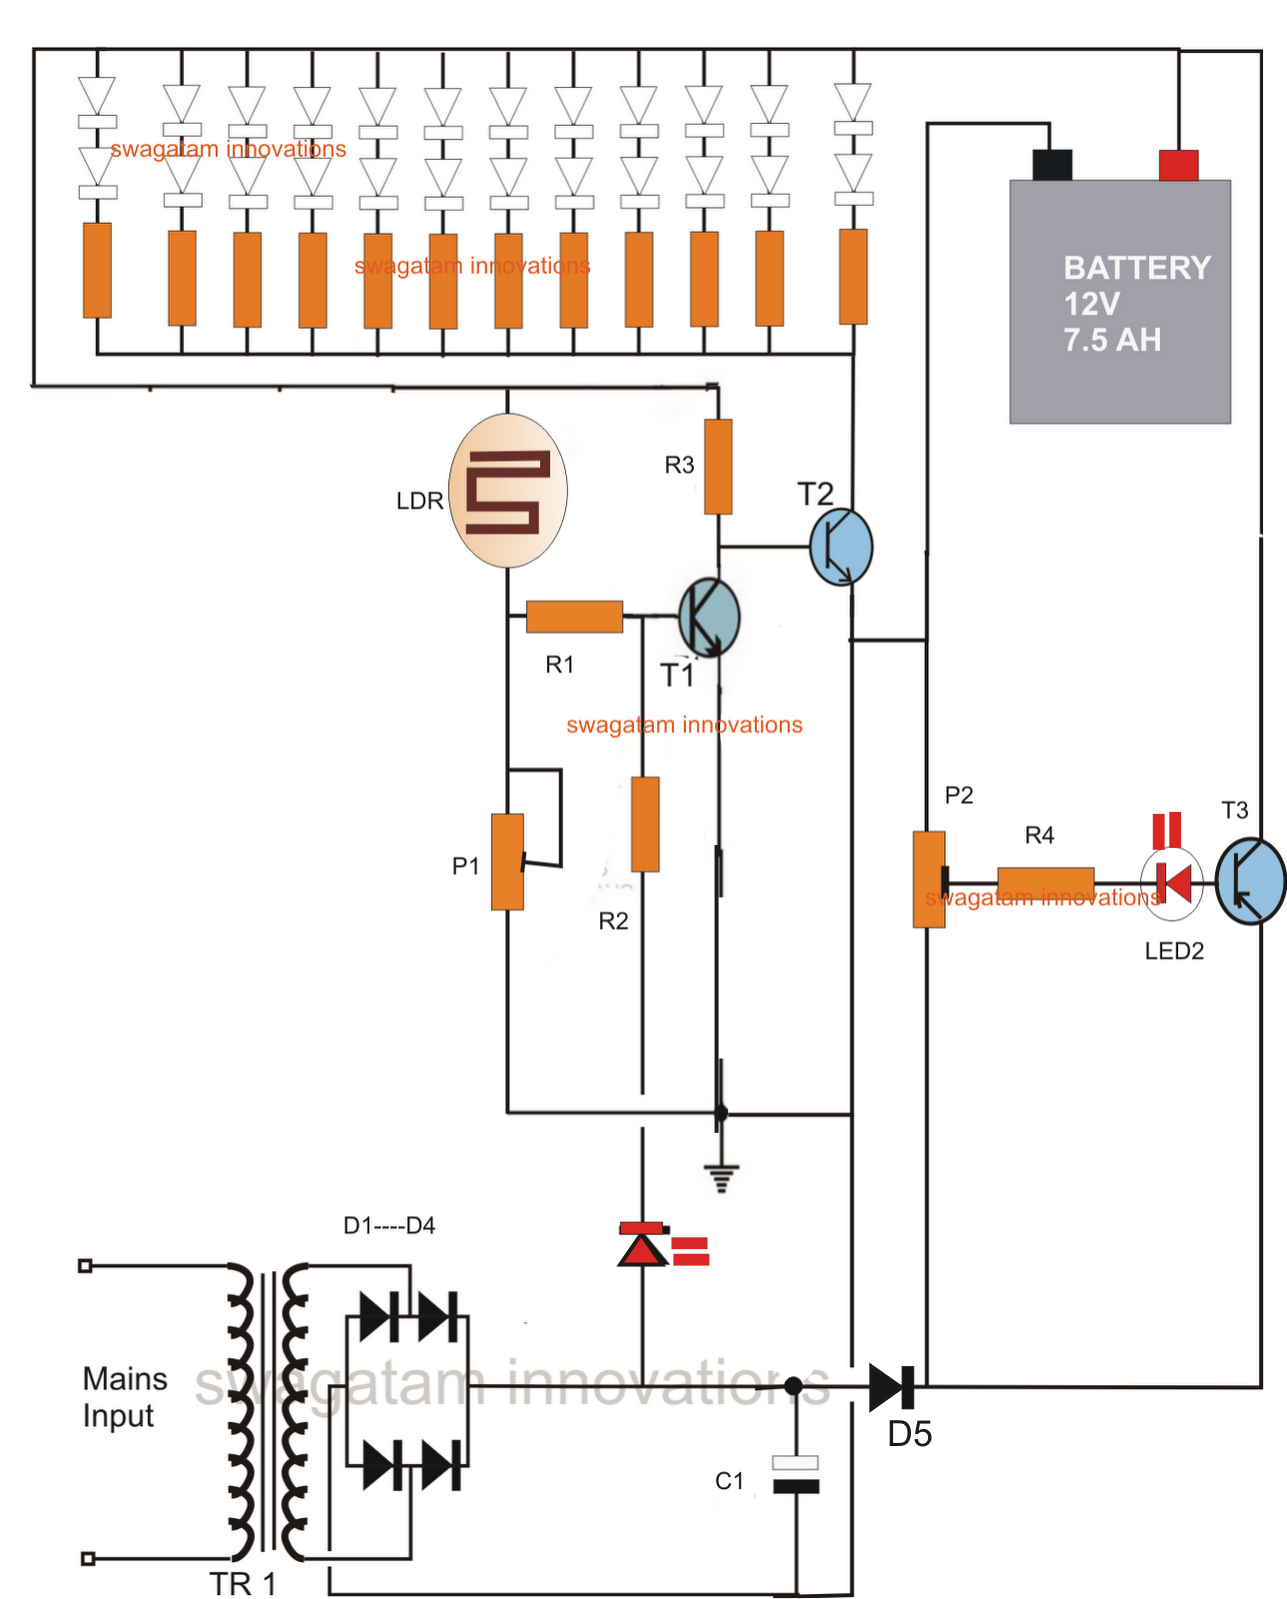 3bangwiring in addition TRAFFIC LIGHT CONTROLLER LIGHT SEQUENCER 261245079481 additionally Plc And Scada Project Ppt besides Ftth together with Controlling The Mi Light From Arduino. on wiring diagram for traffic light